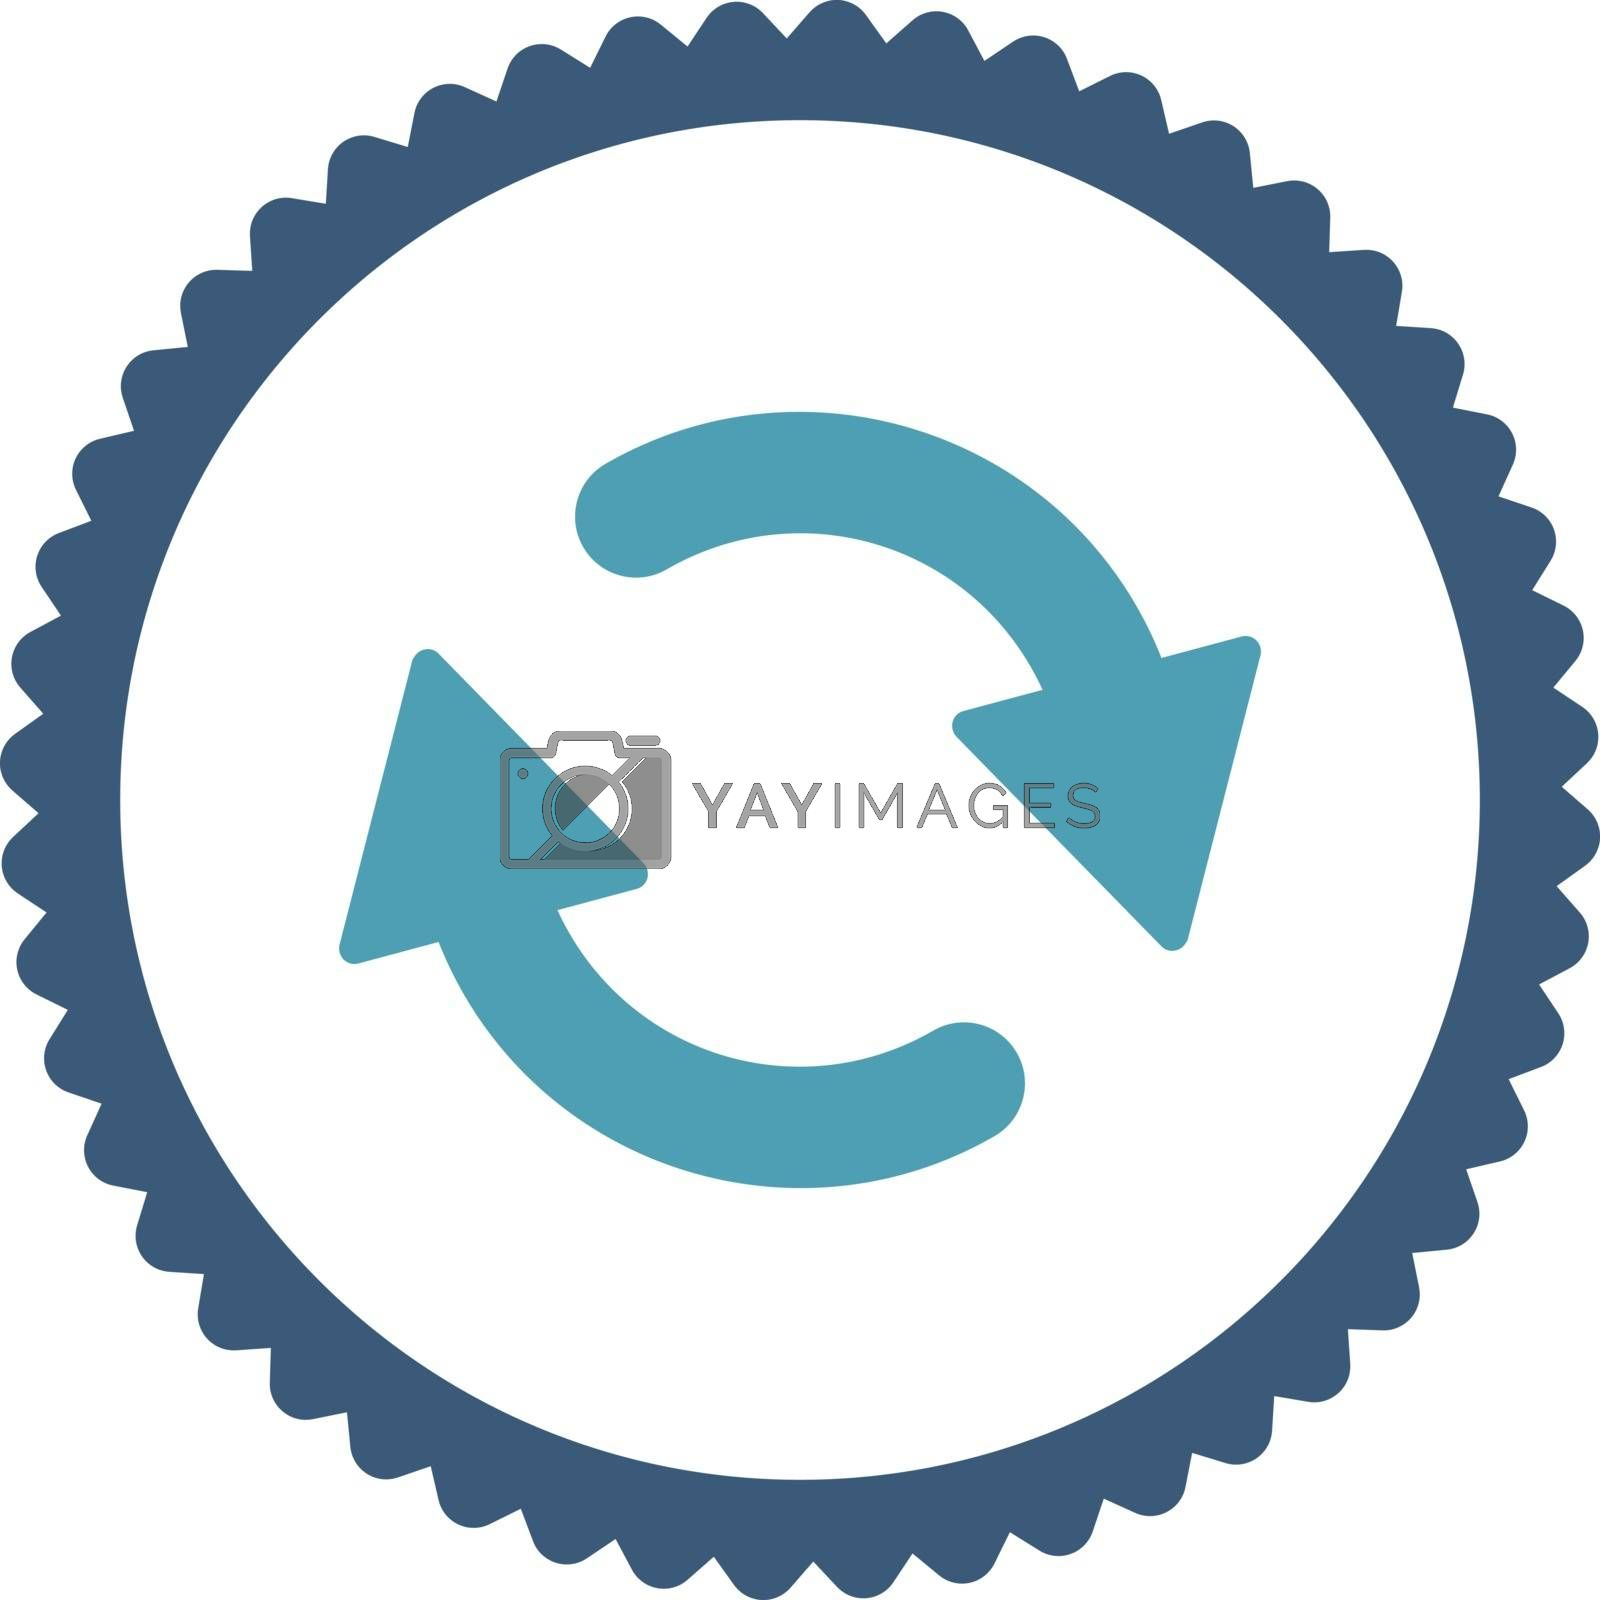 Refresh flat cyan and blue colors round stamp icon by Aha-Soft